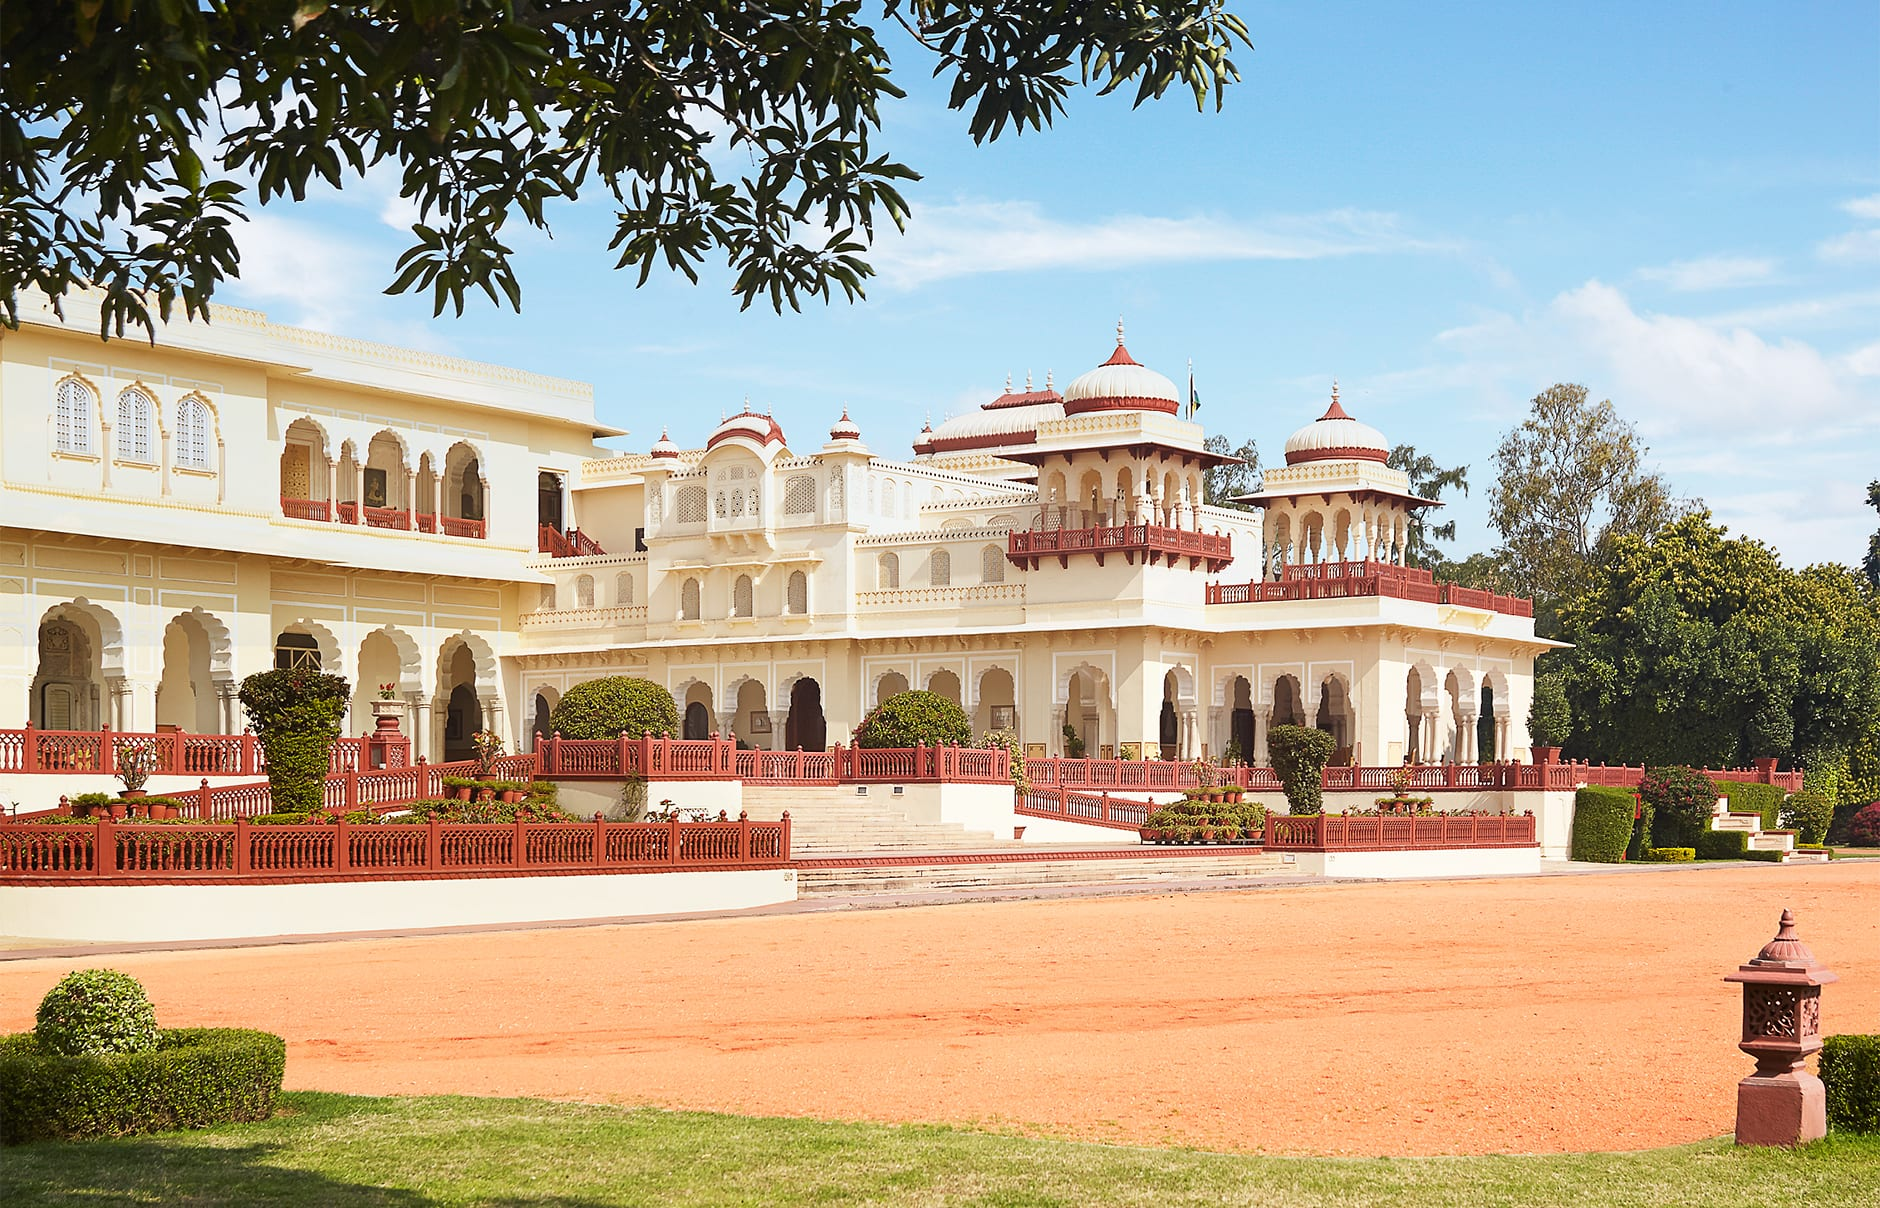 Rambagh Palace, Jaipur, India. © Taj Hotels Resorts and Palaces